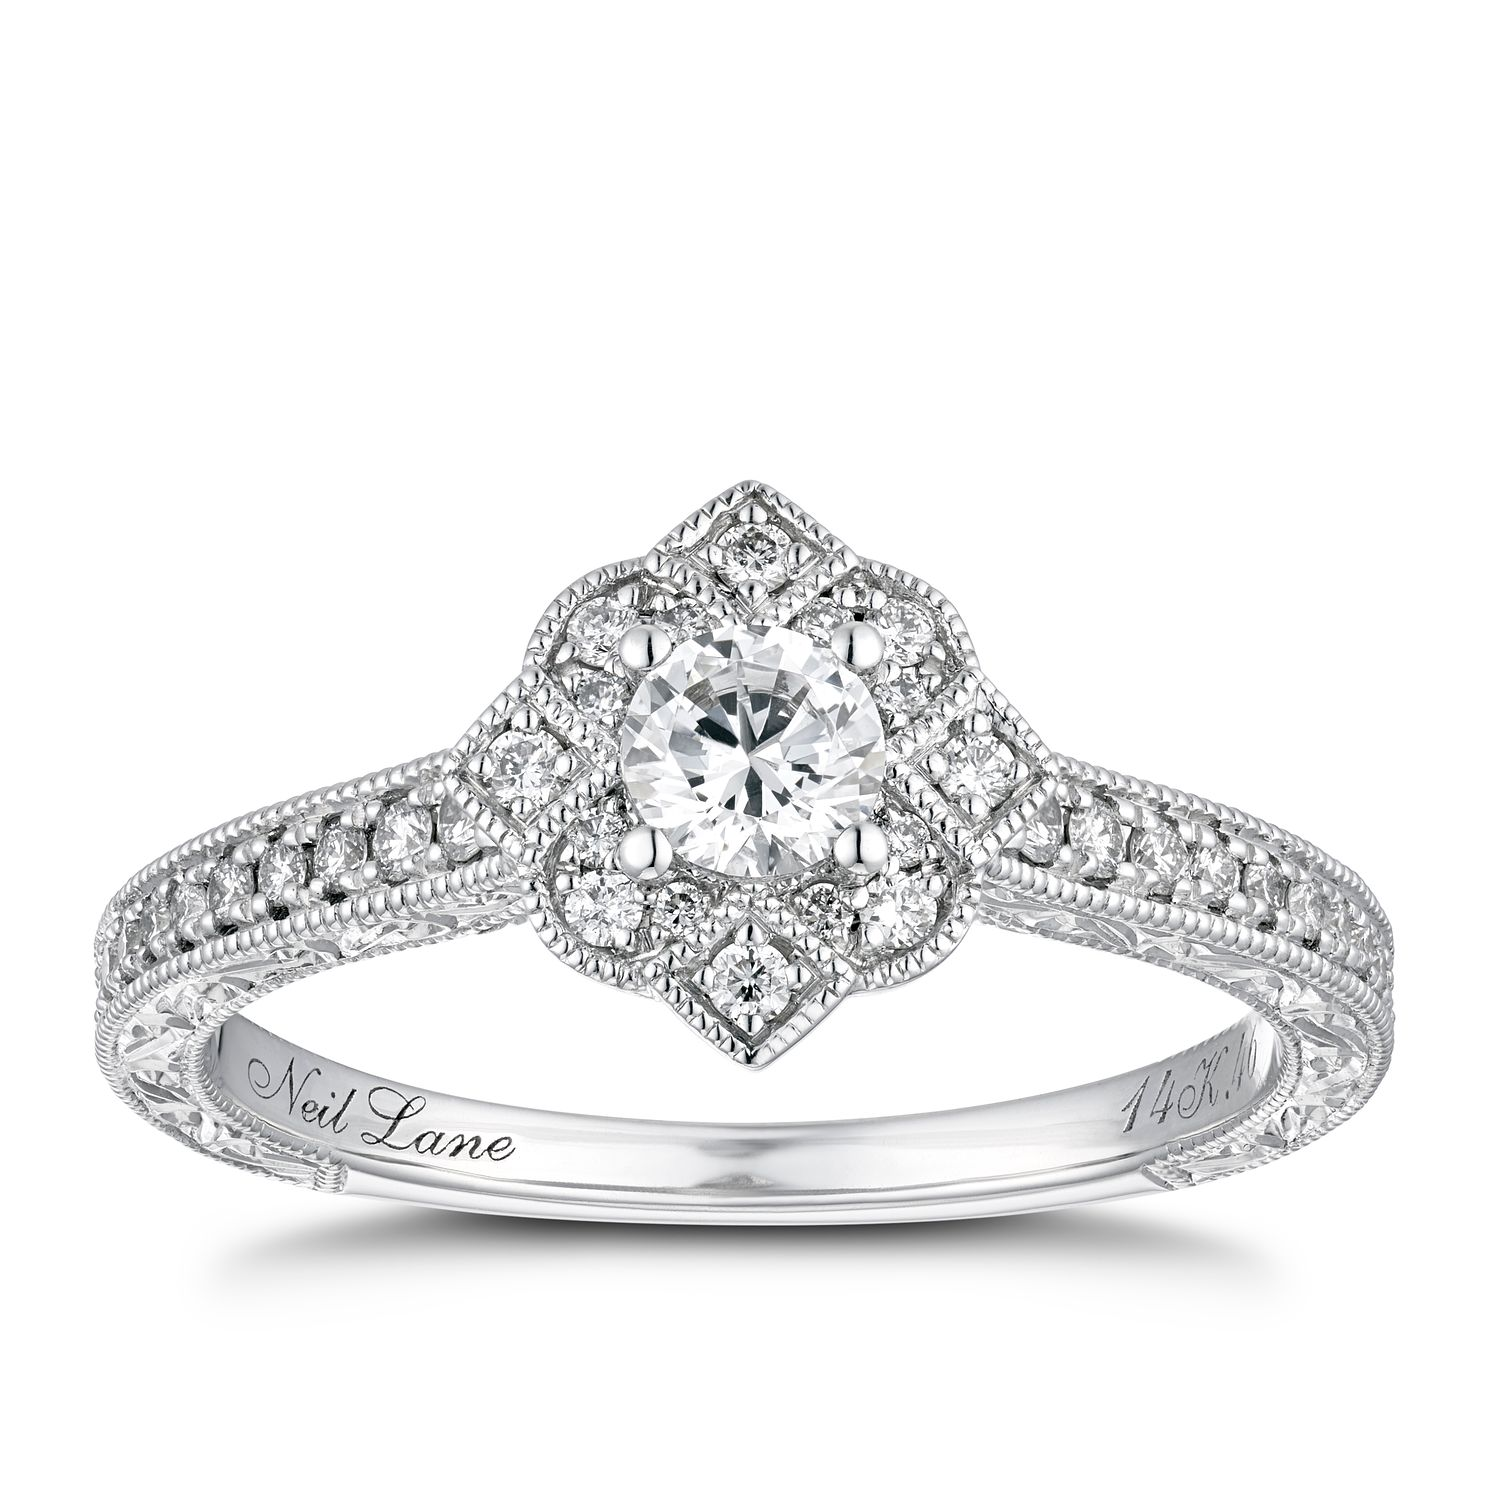 Neil Lane 14ct White Gold 0.46ct Diamond Halo Ring - Product number 1112309